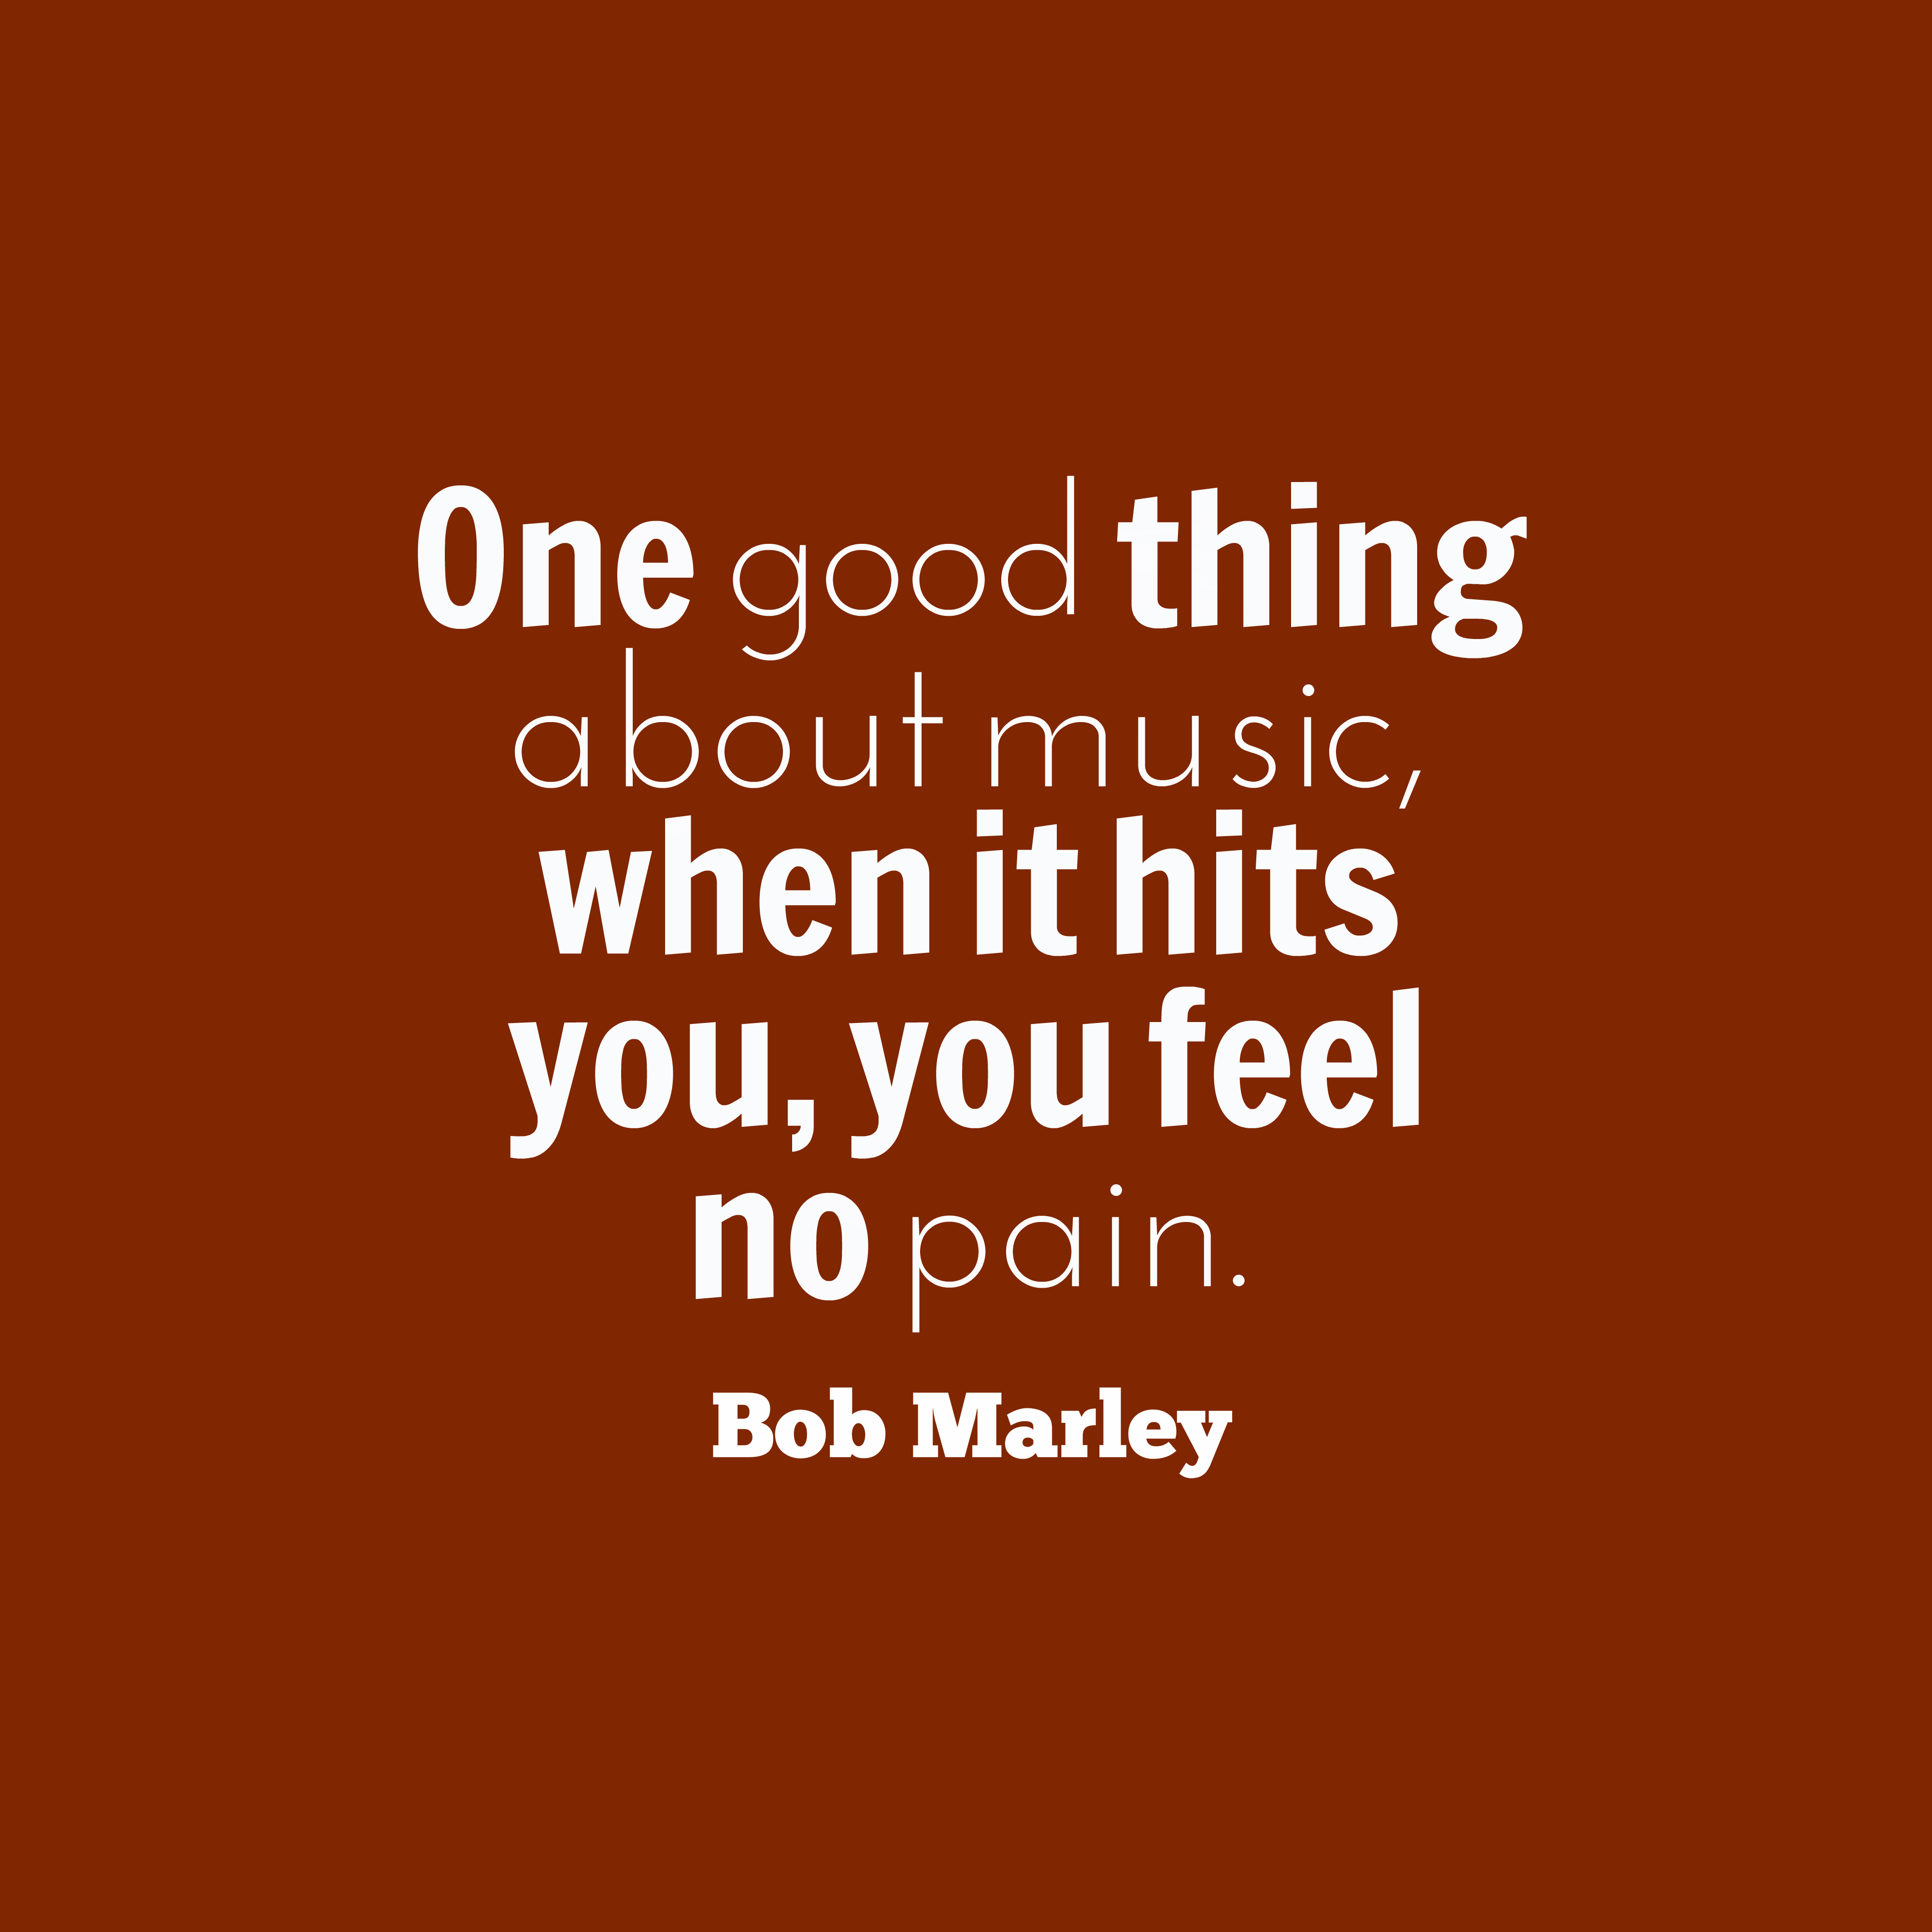 Quotes image of One good thing about music, when it hits you, you feel no pain.